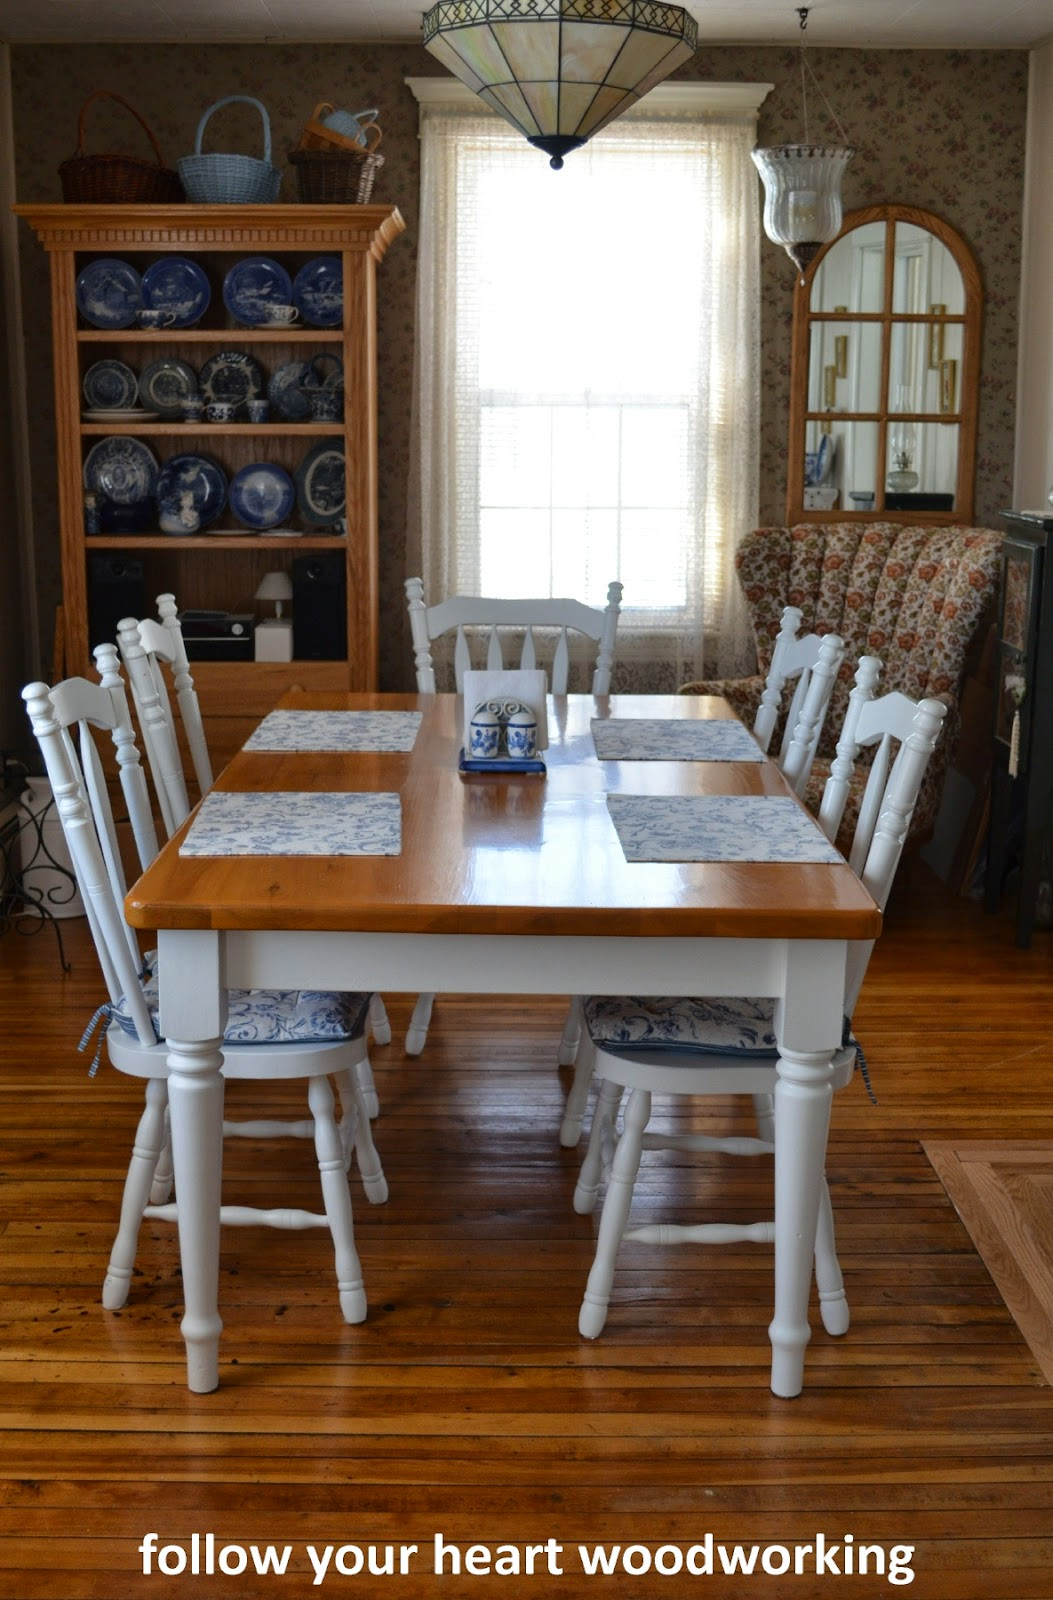 follow your heart woodworking painting a farmhouse table